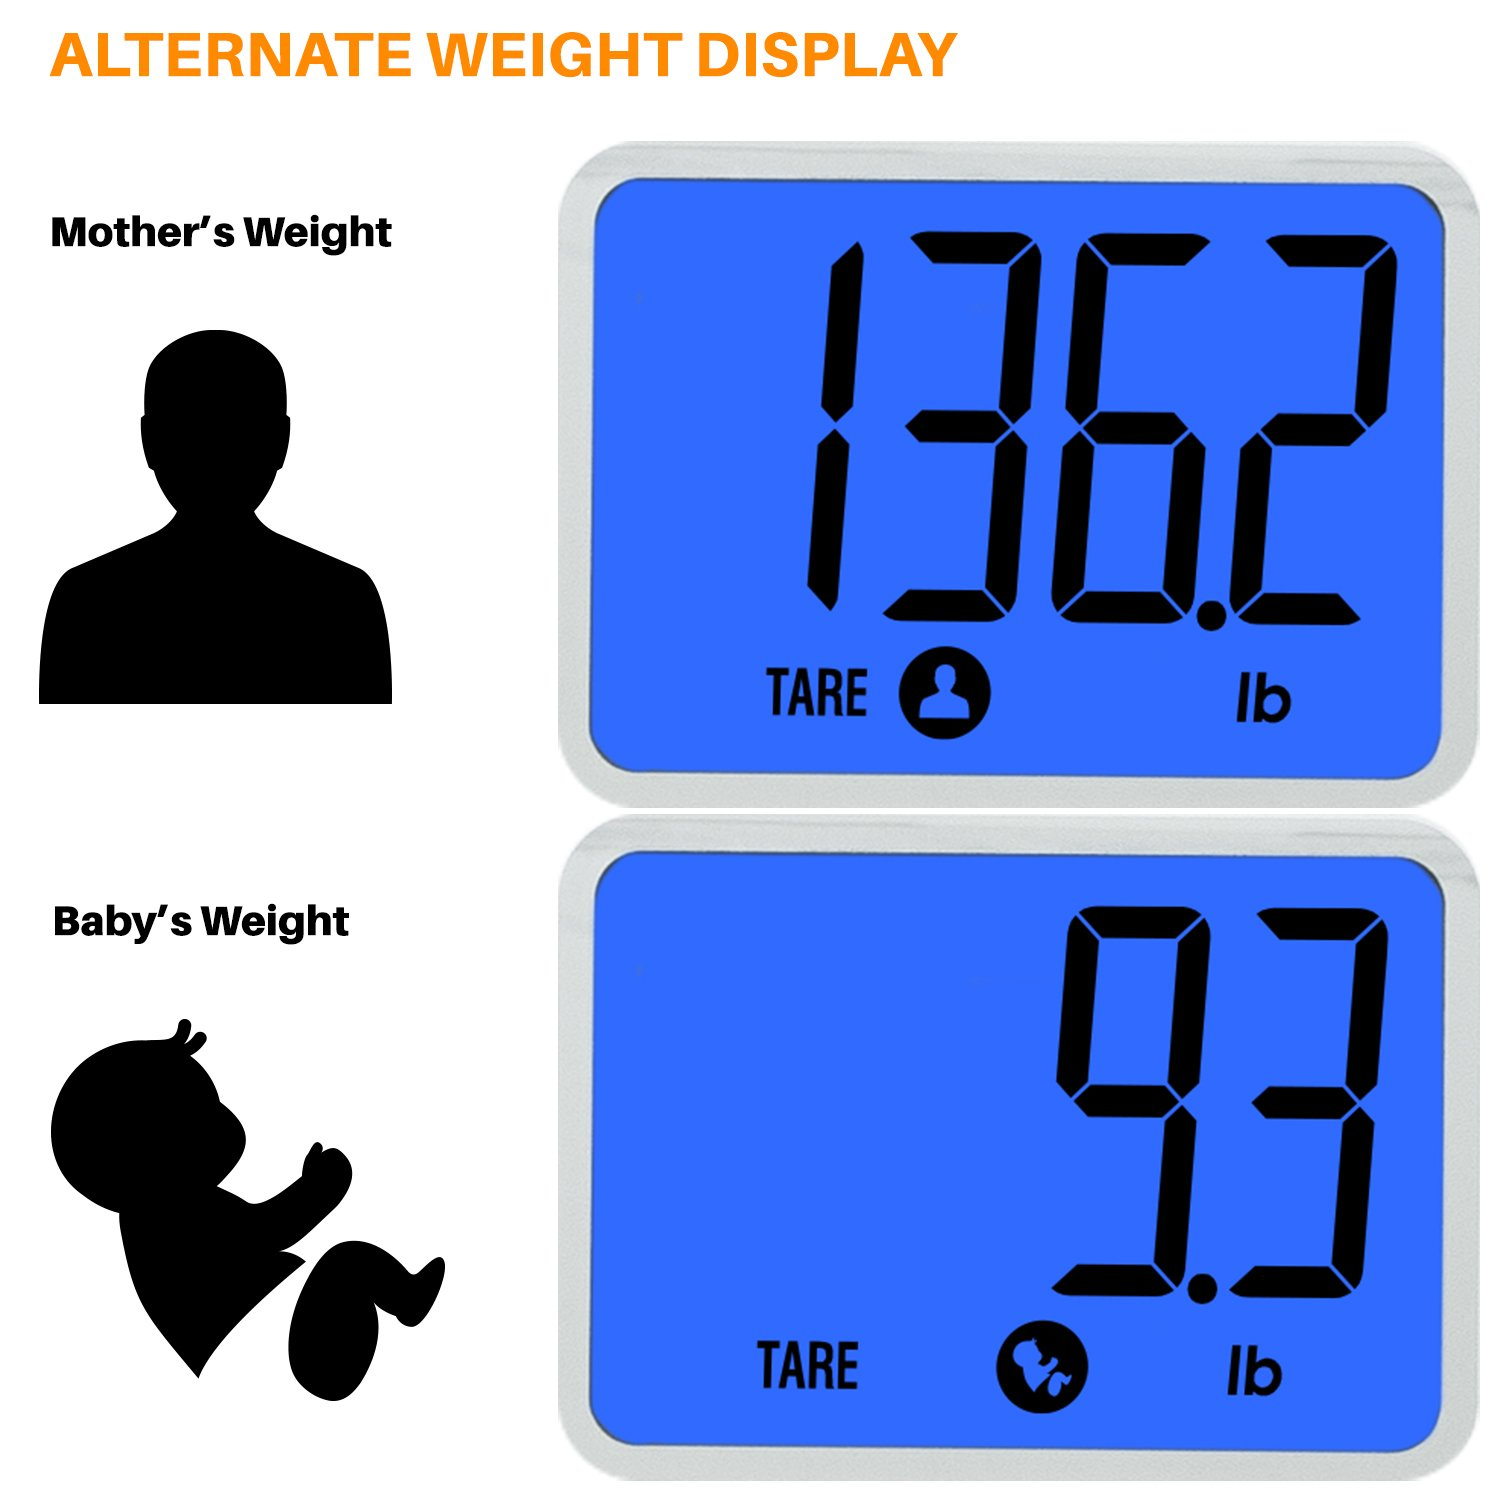 Smart Weigh Digital Body Weight Scale with Baby or Pet Tare Weighing Technology, Bathroom Scale with Large LCD Display and Tempered Glass Platform, 440lbs/200kg Capacity (Black) by Smart Weigh (Image #7)